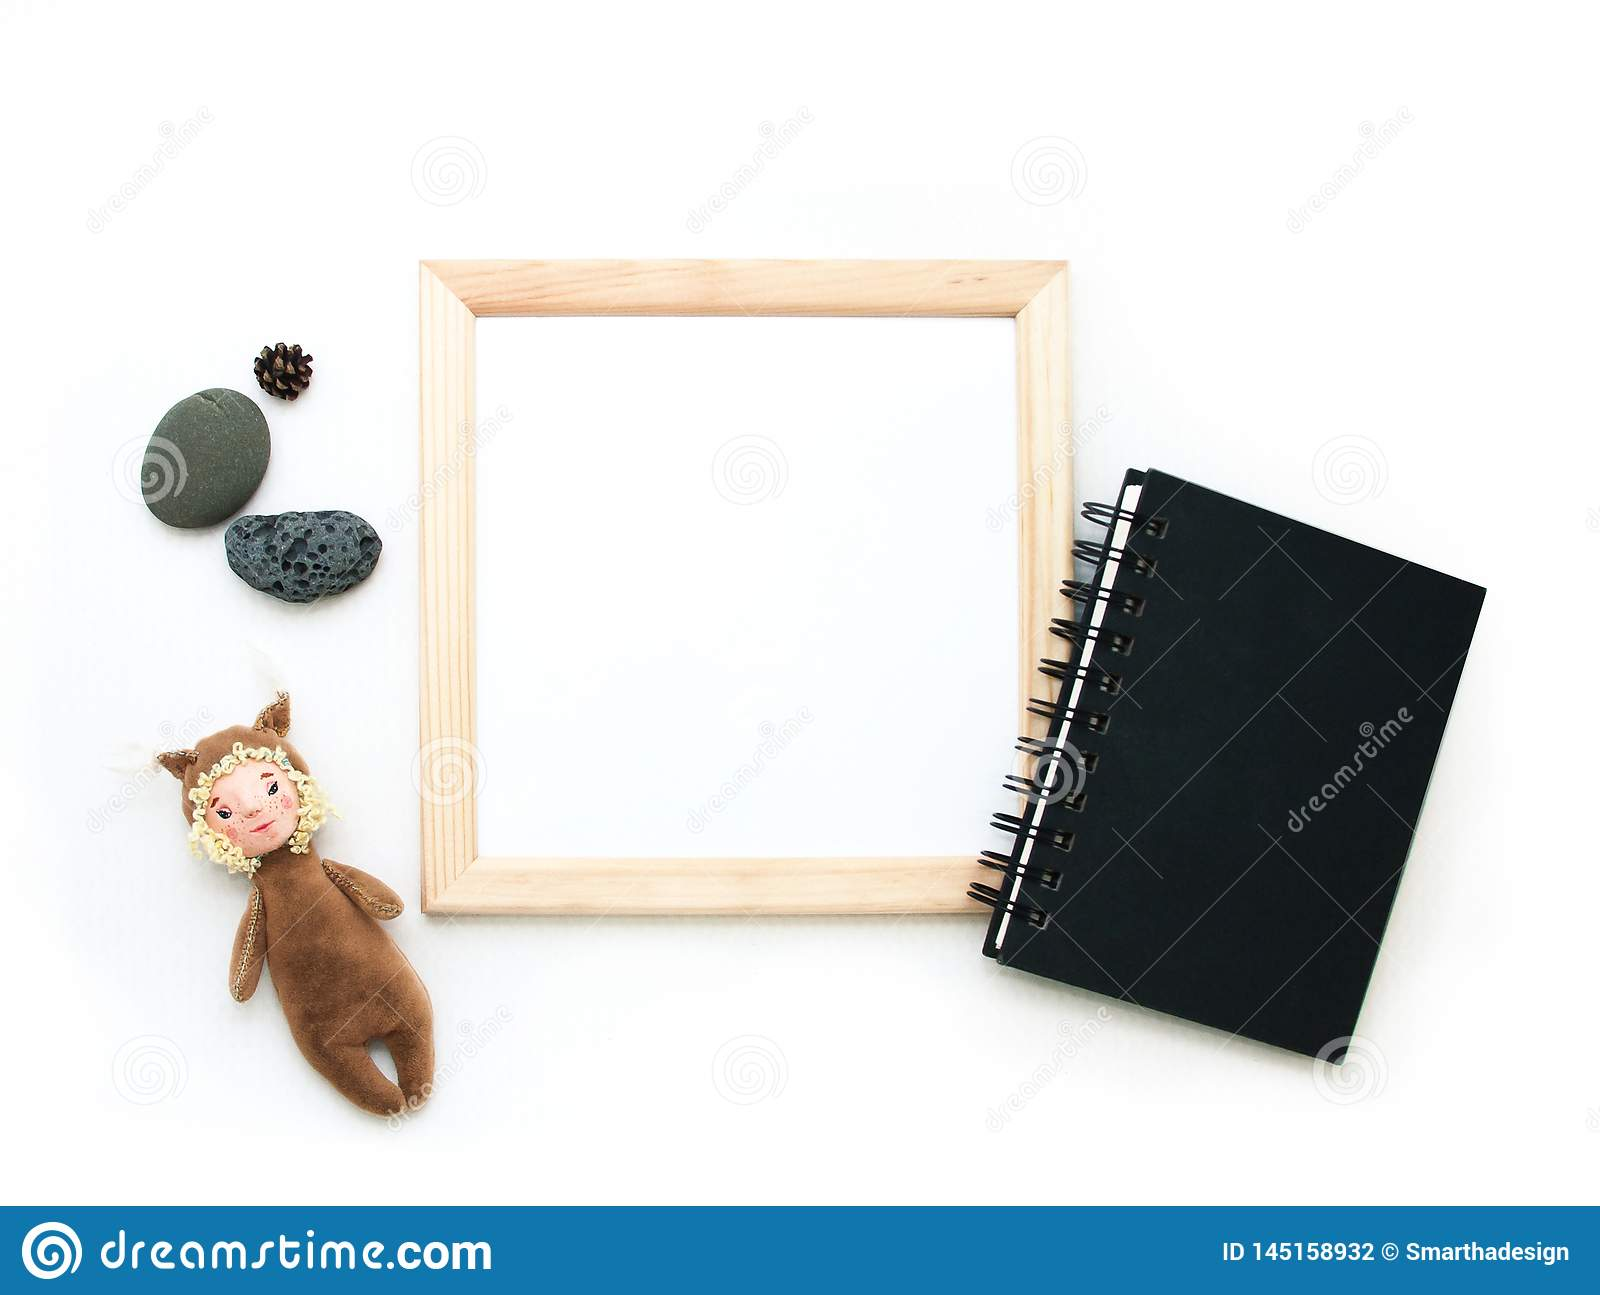 Flat lay mock up, top view, wooden frame, toy squirrel, stones, black note pad. Interior layout, square poster mockup, wood frame